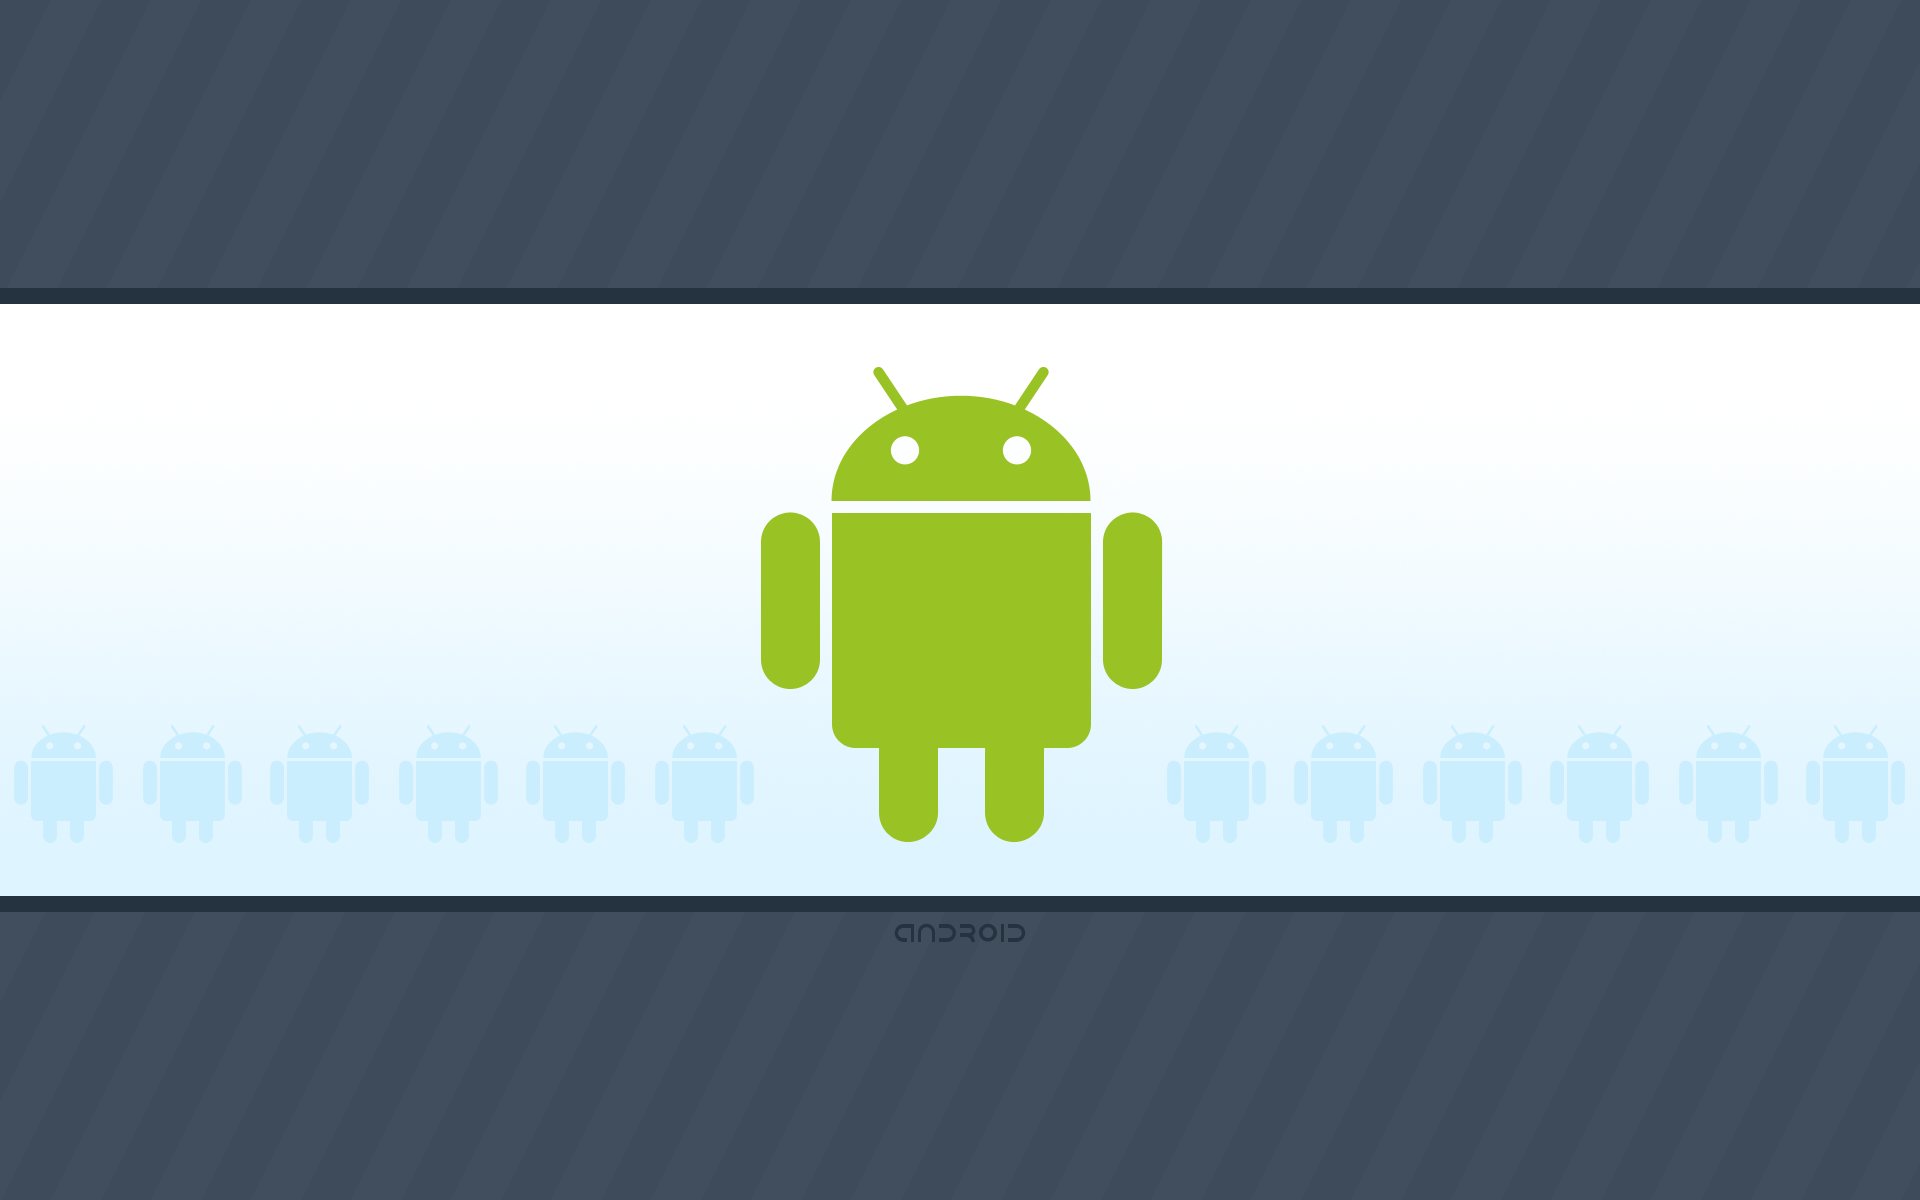 Android Wallpapers Android Myspace Backgrounds Android Backgrounds 1920x1200